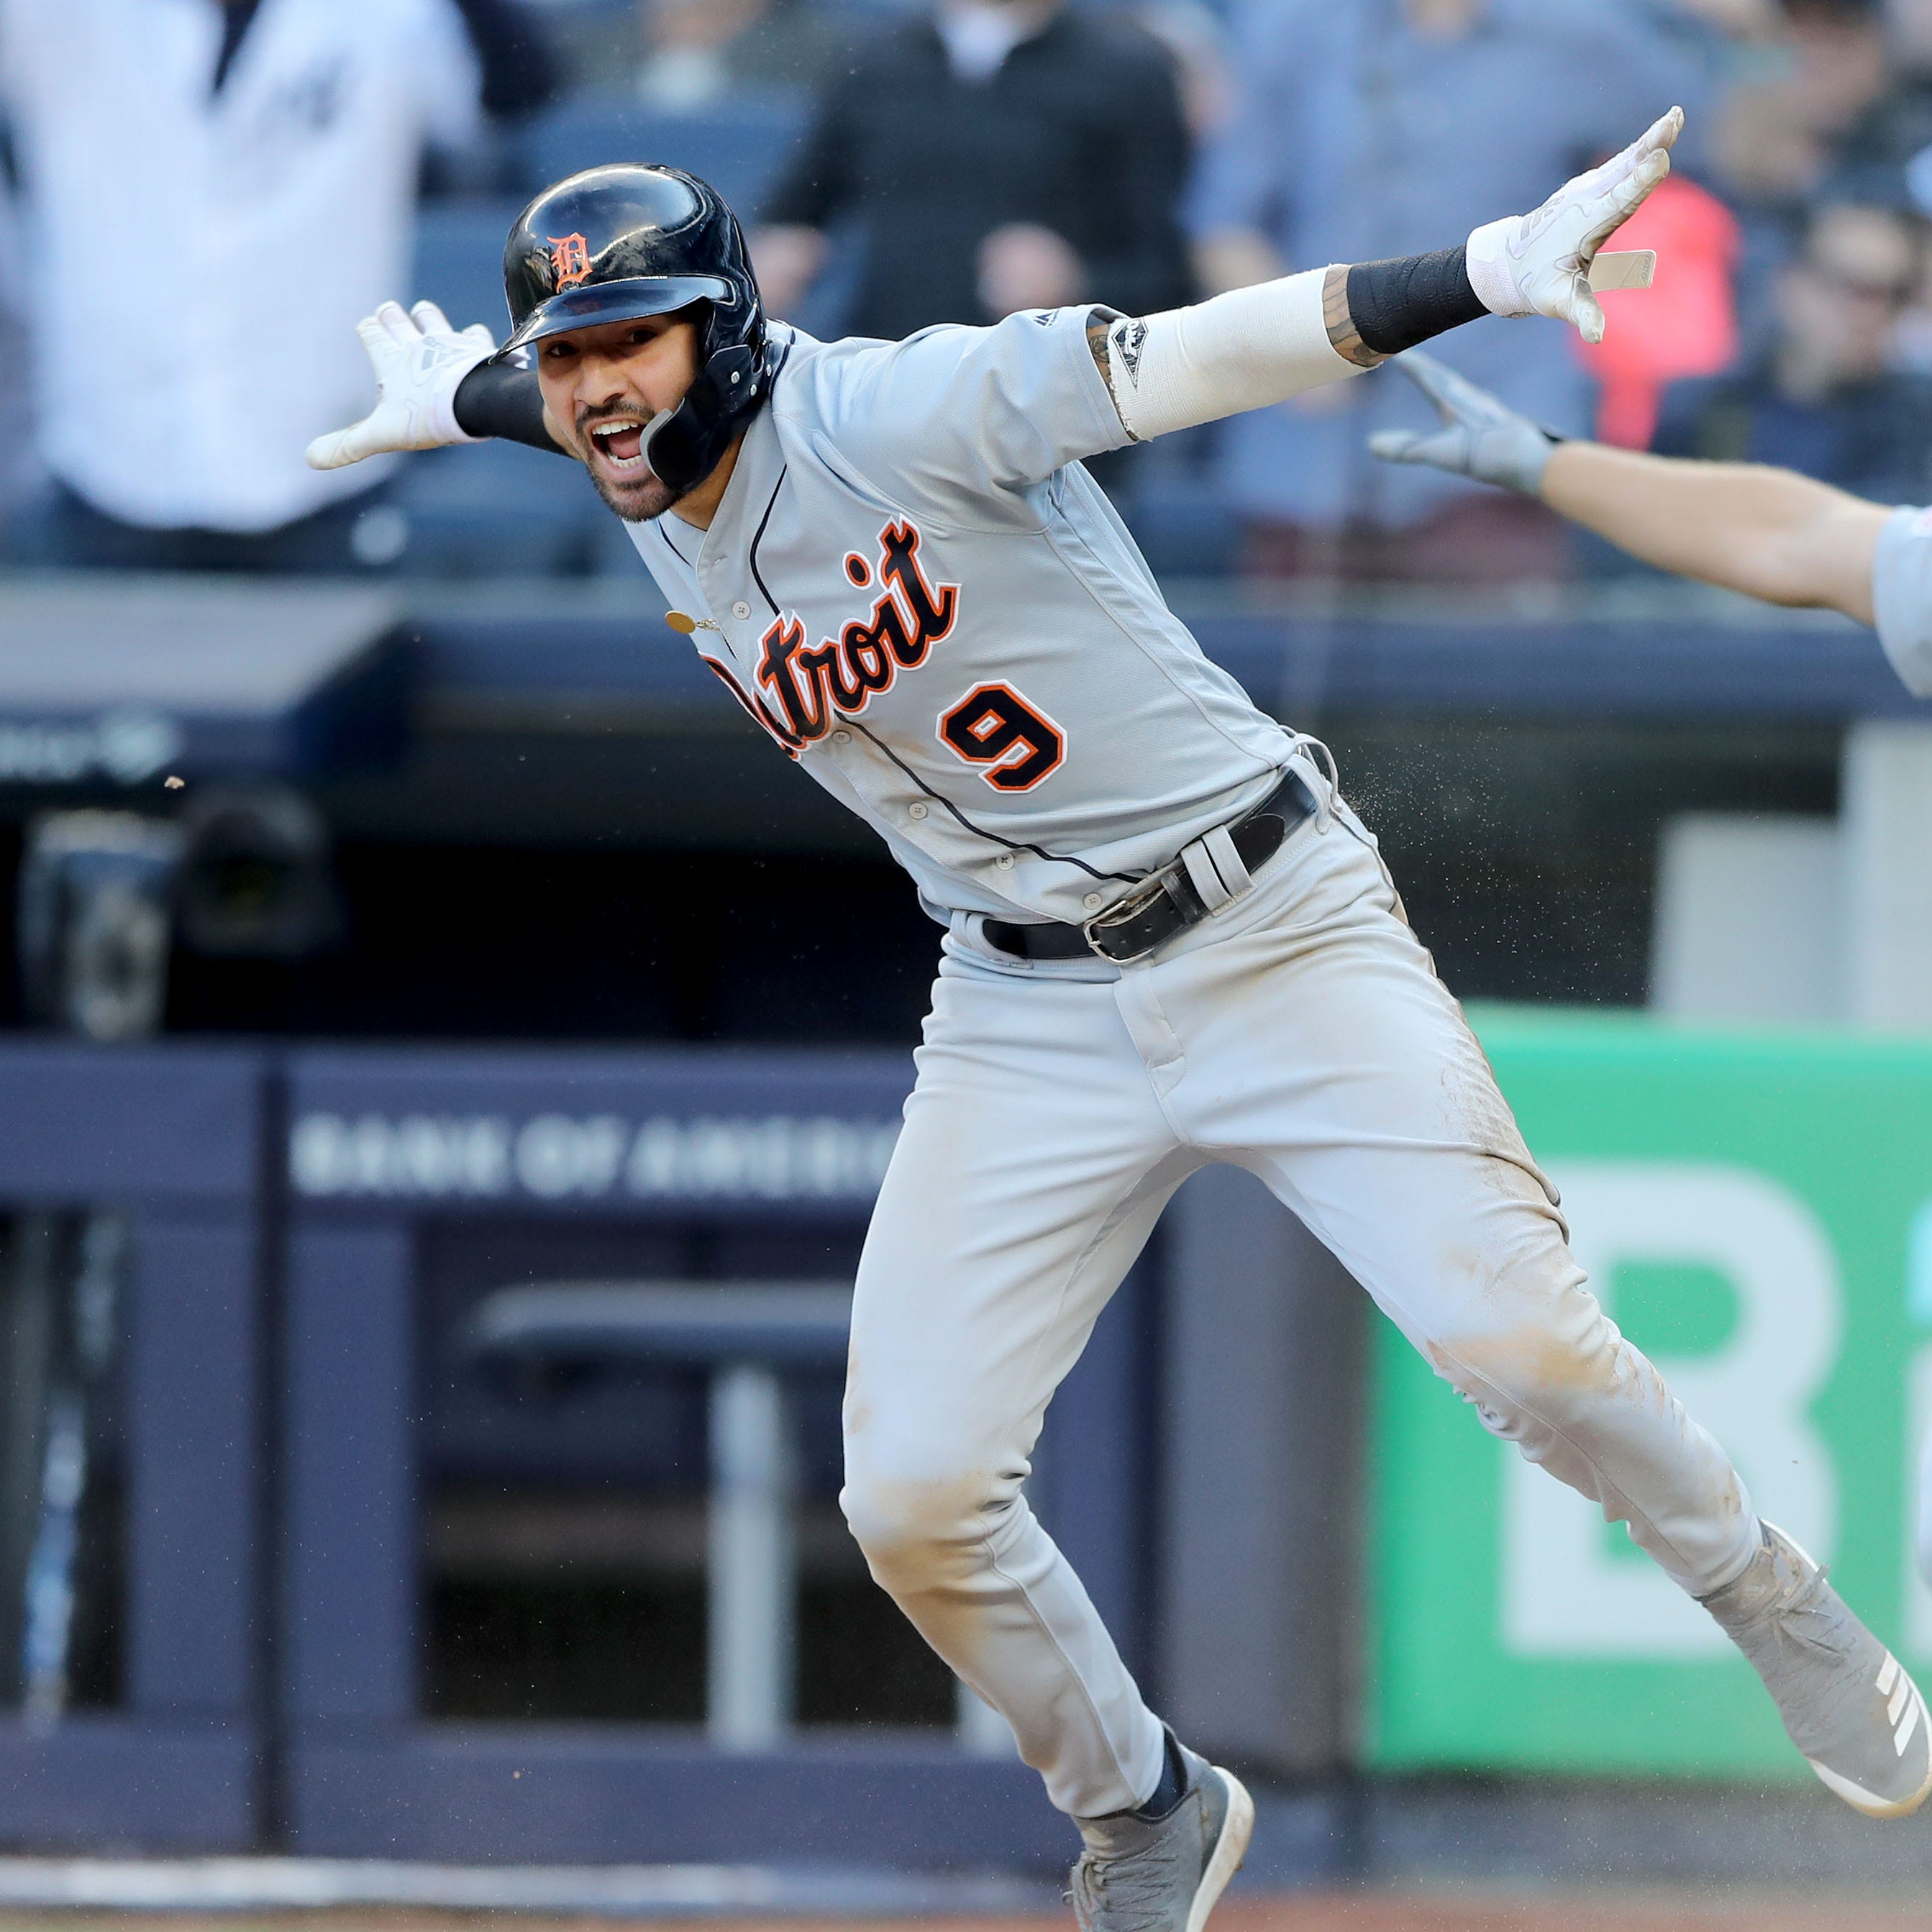 Tigers return for Opening Day with momentum: 'Tell Detroit we're coming'